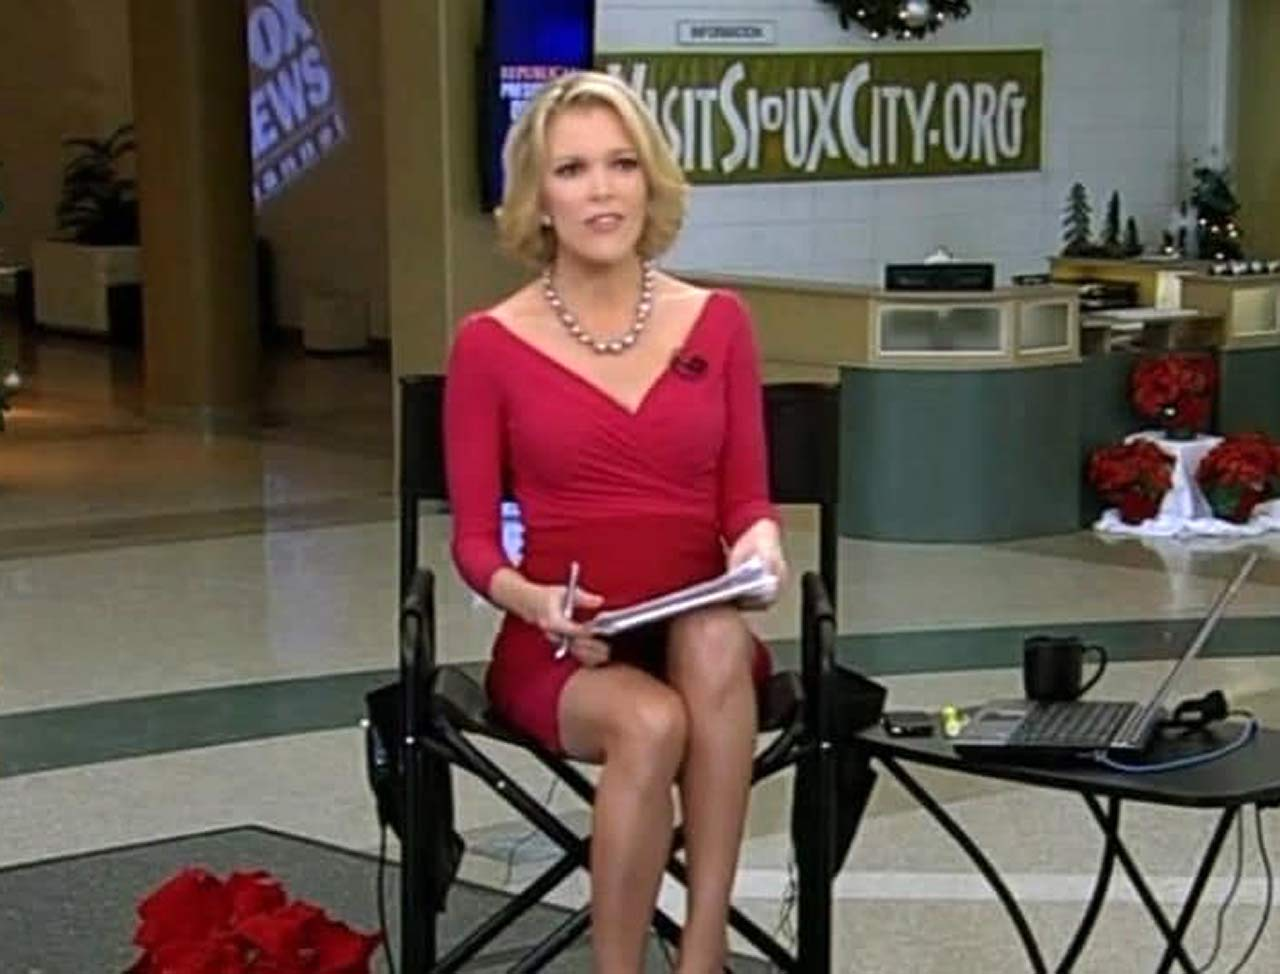 Fox news megyn kelly nude